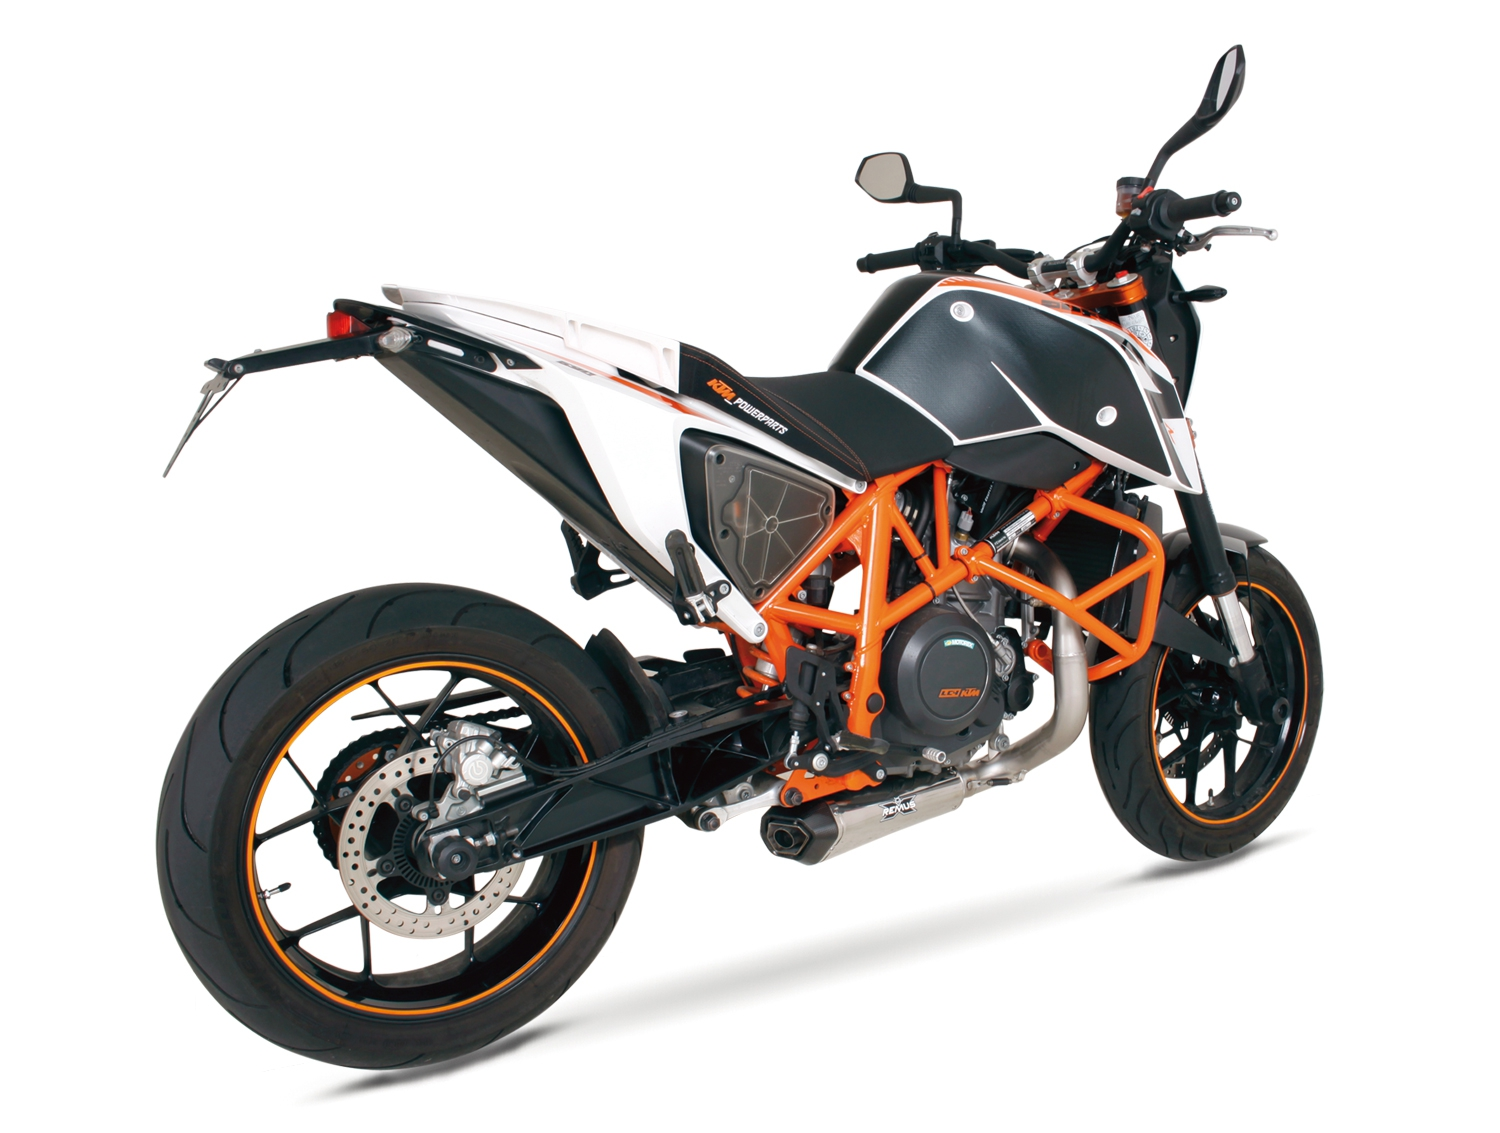 remus news bike info 08 16 ktm 690 duke 5 5r mod 2016. Black Bedroom Furniture Sets. Home Design Ideas